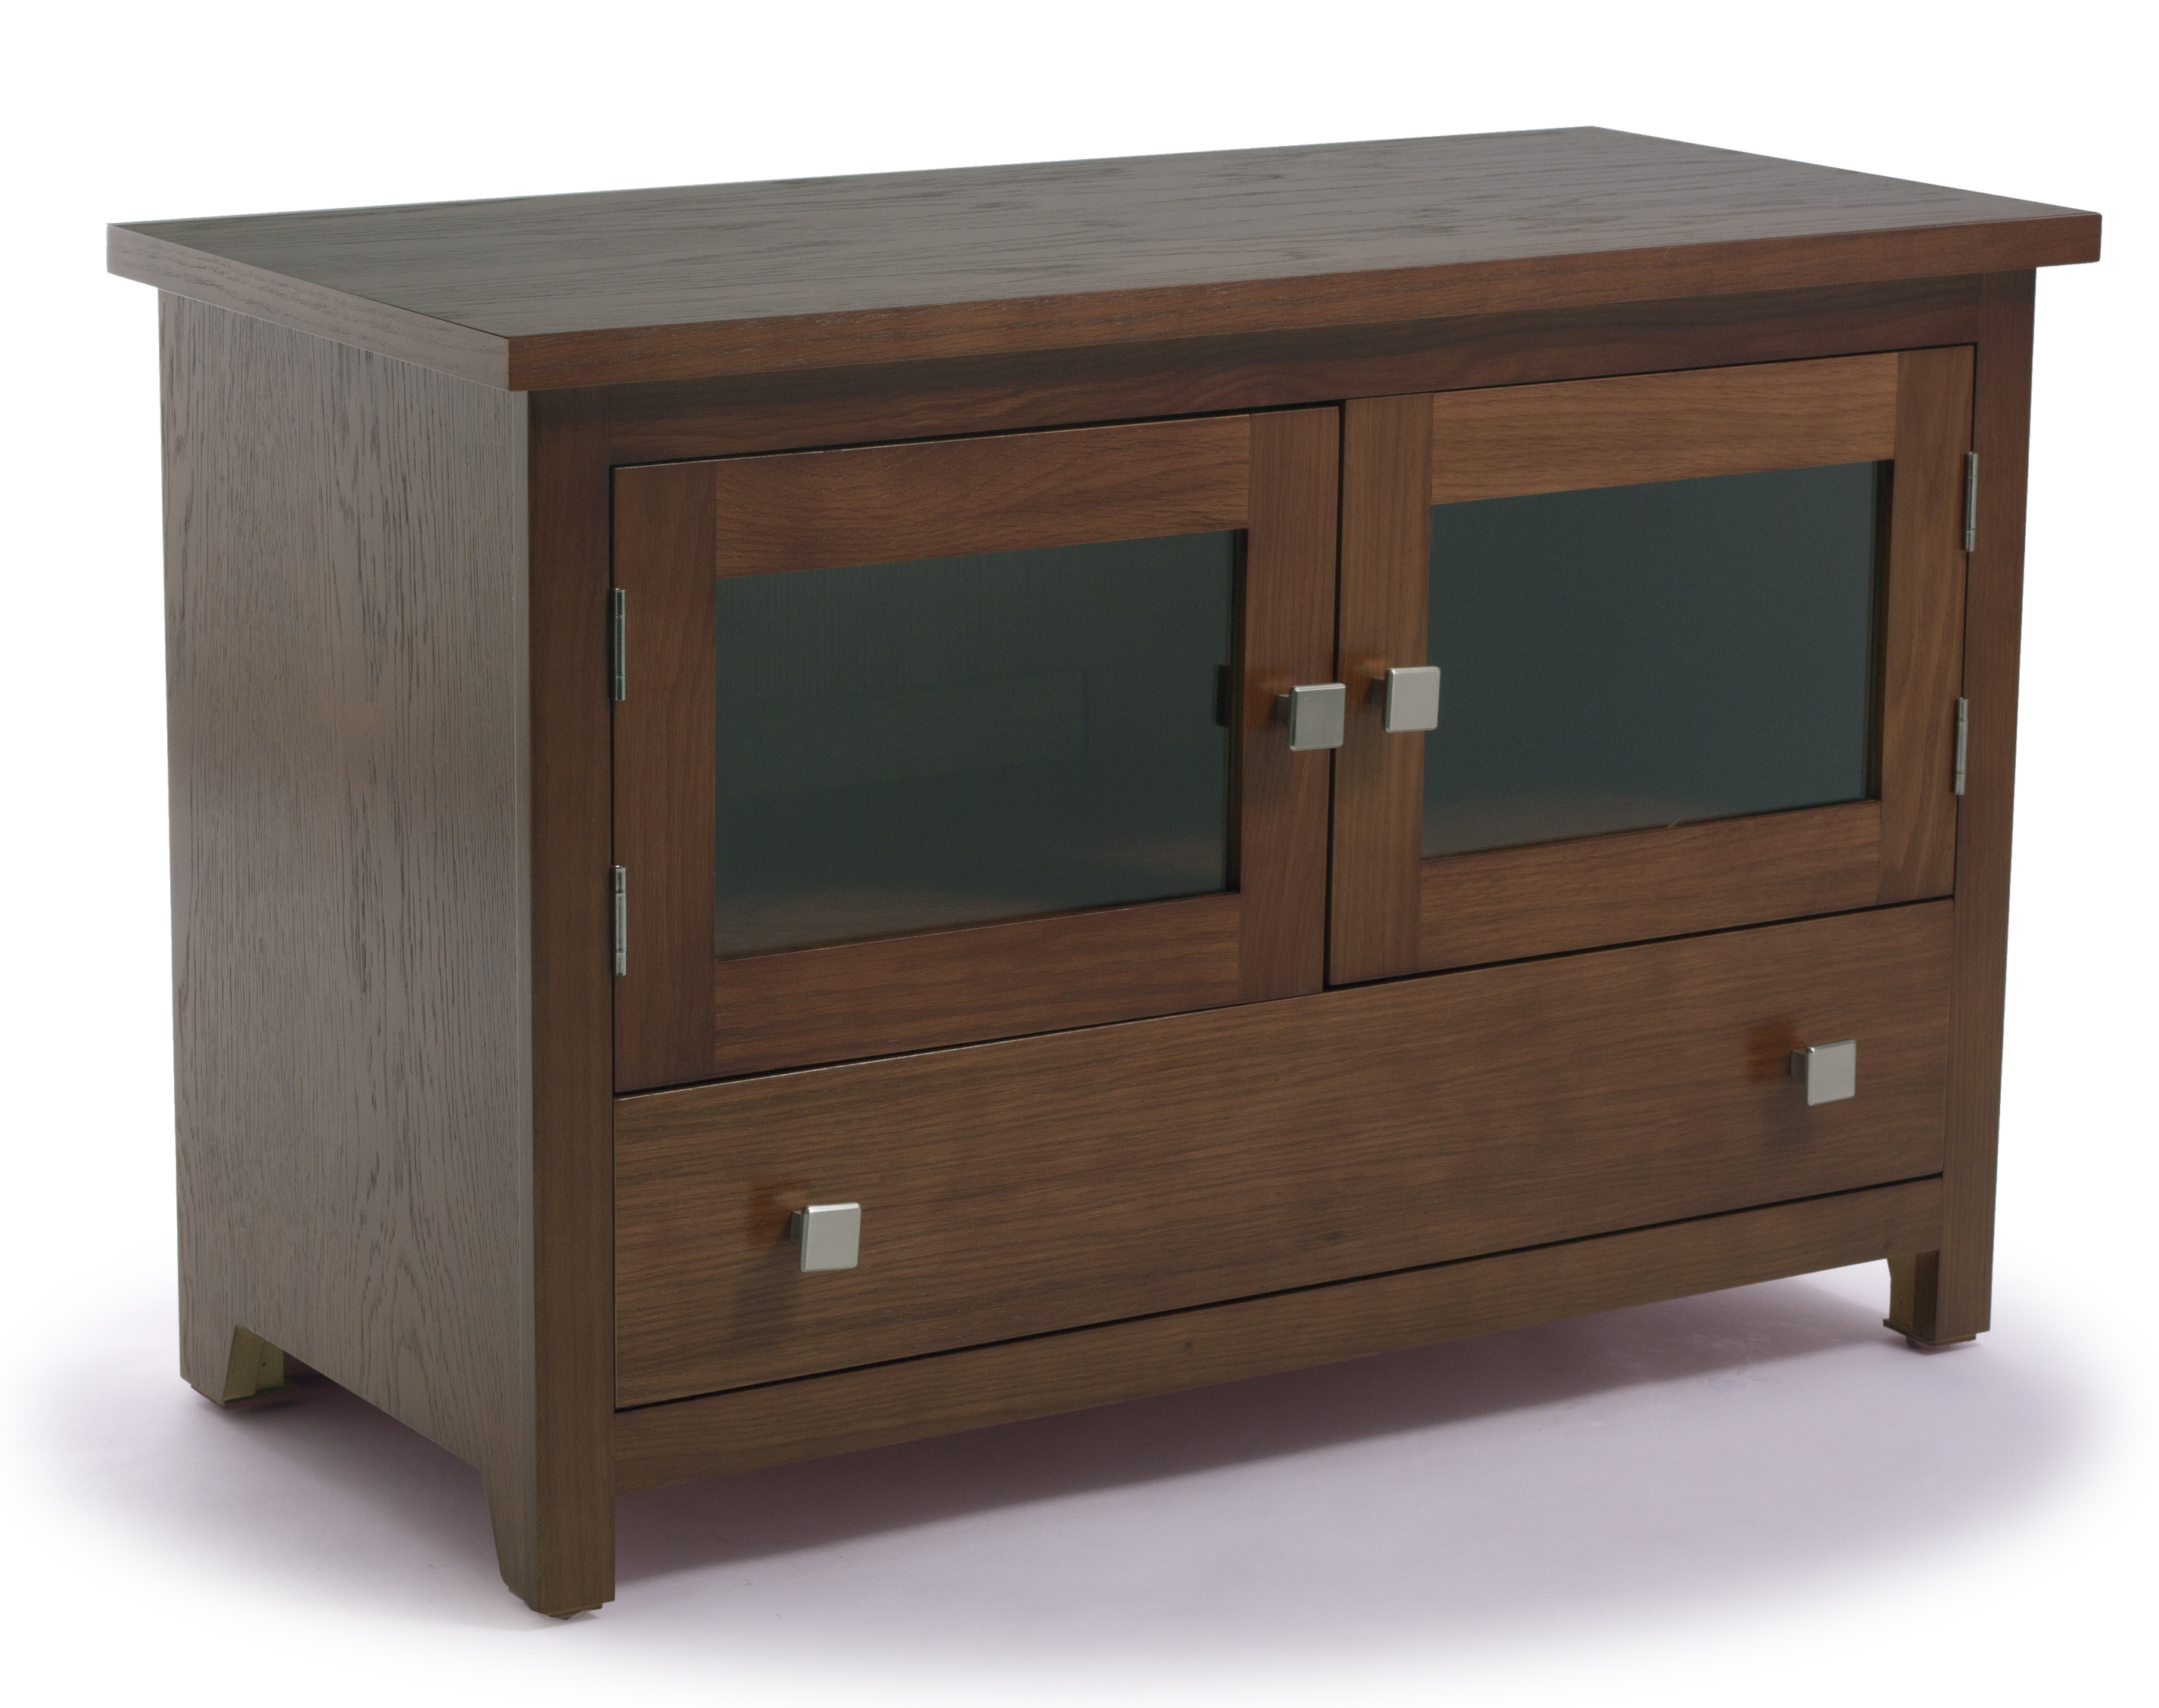 Modern classic tv video unit cfs contract furniture for Modern and classic furniture